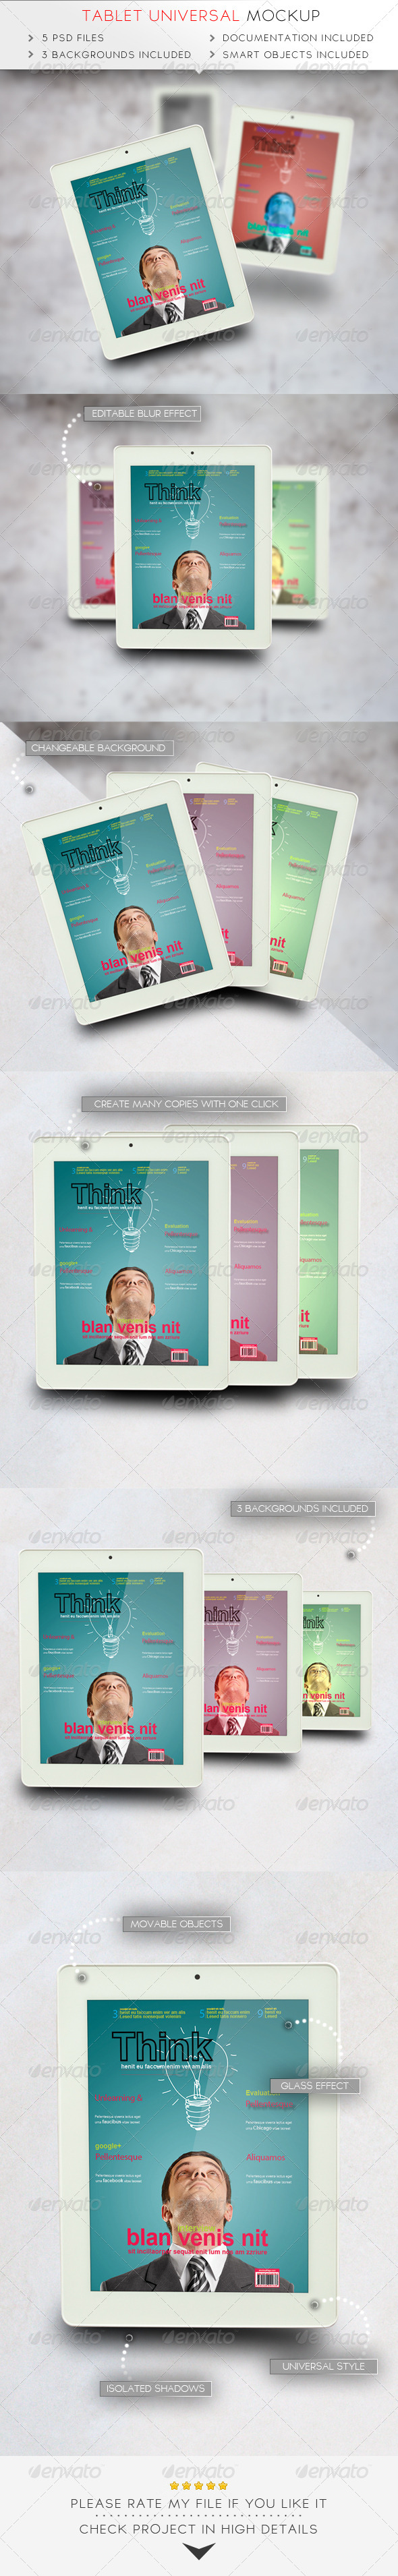 GraphicRiver Tablet Universal Mockup 7487491